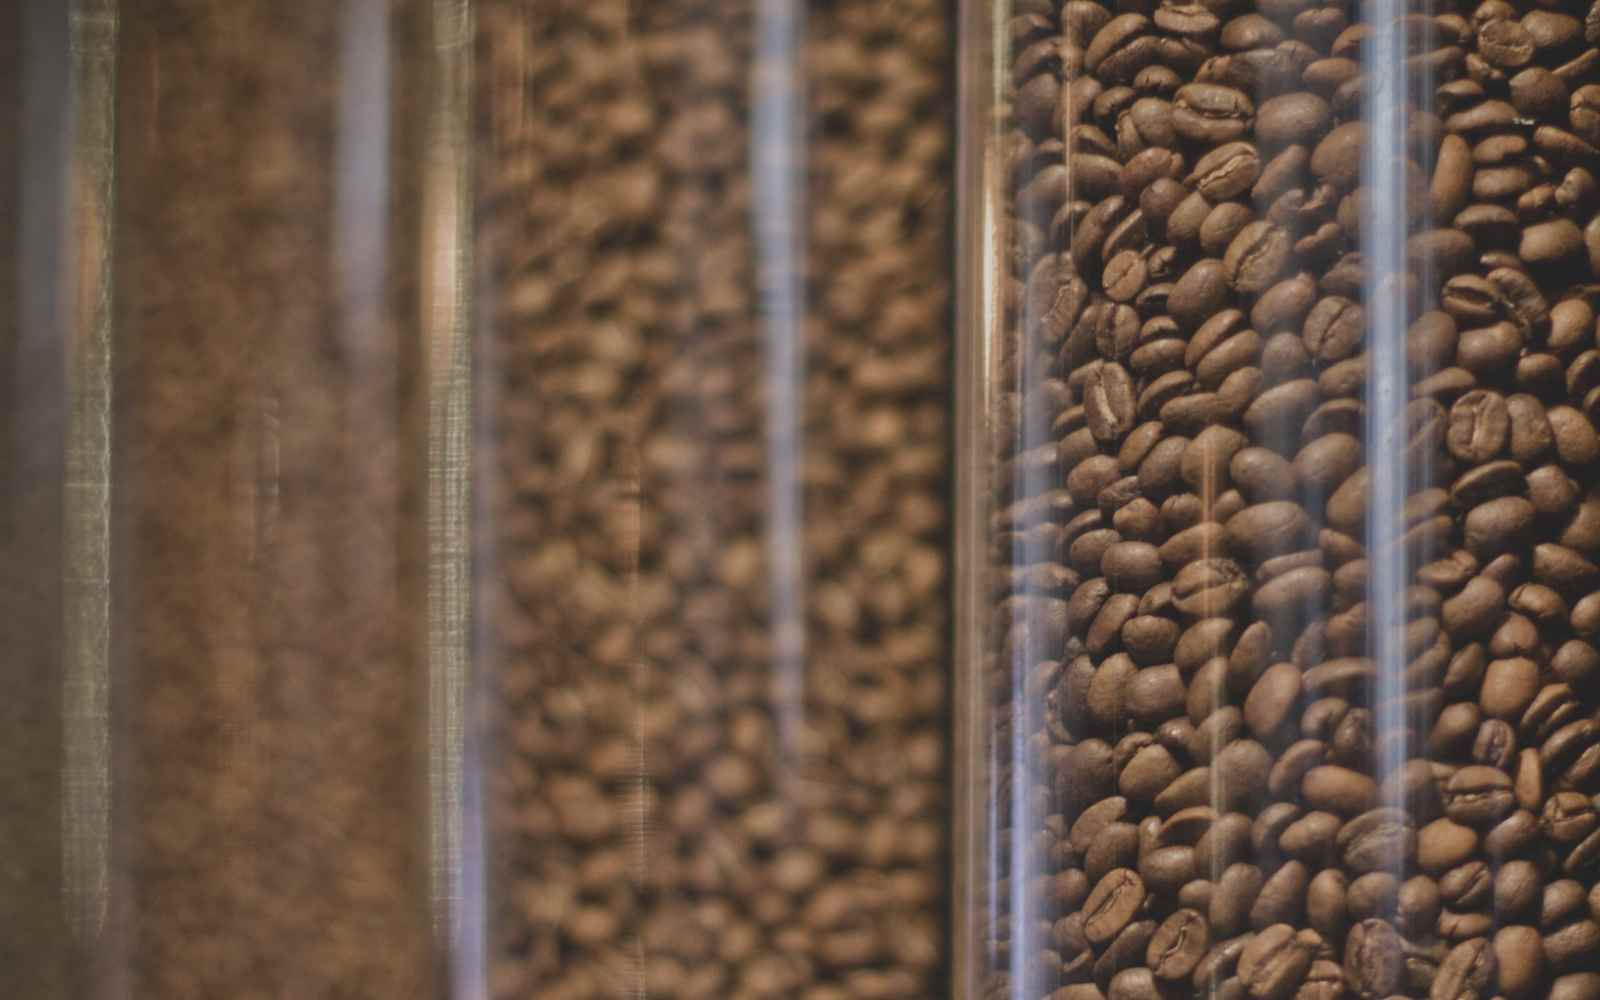 Roasted Alfresco Coffee Beans